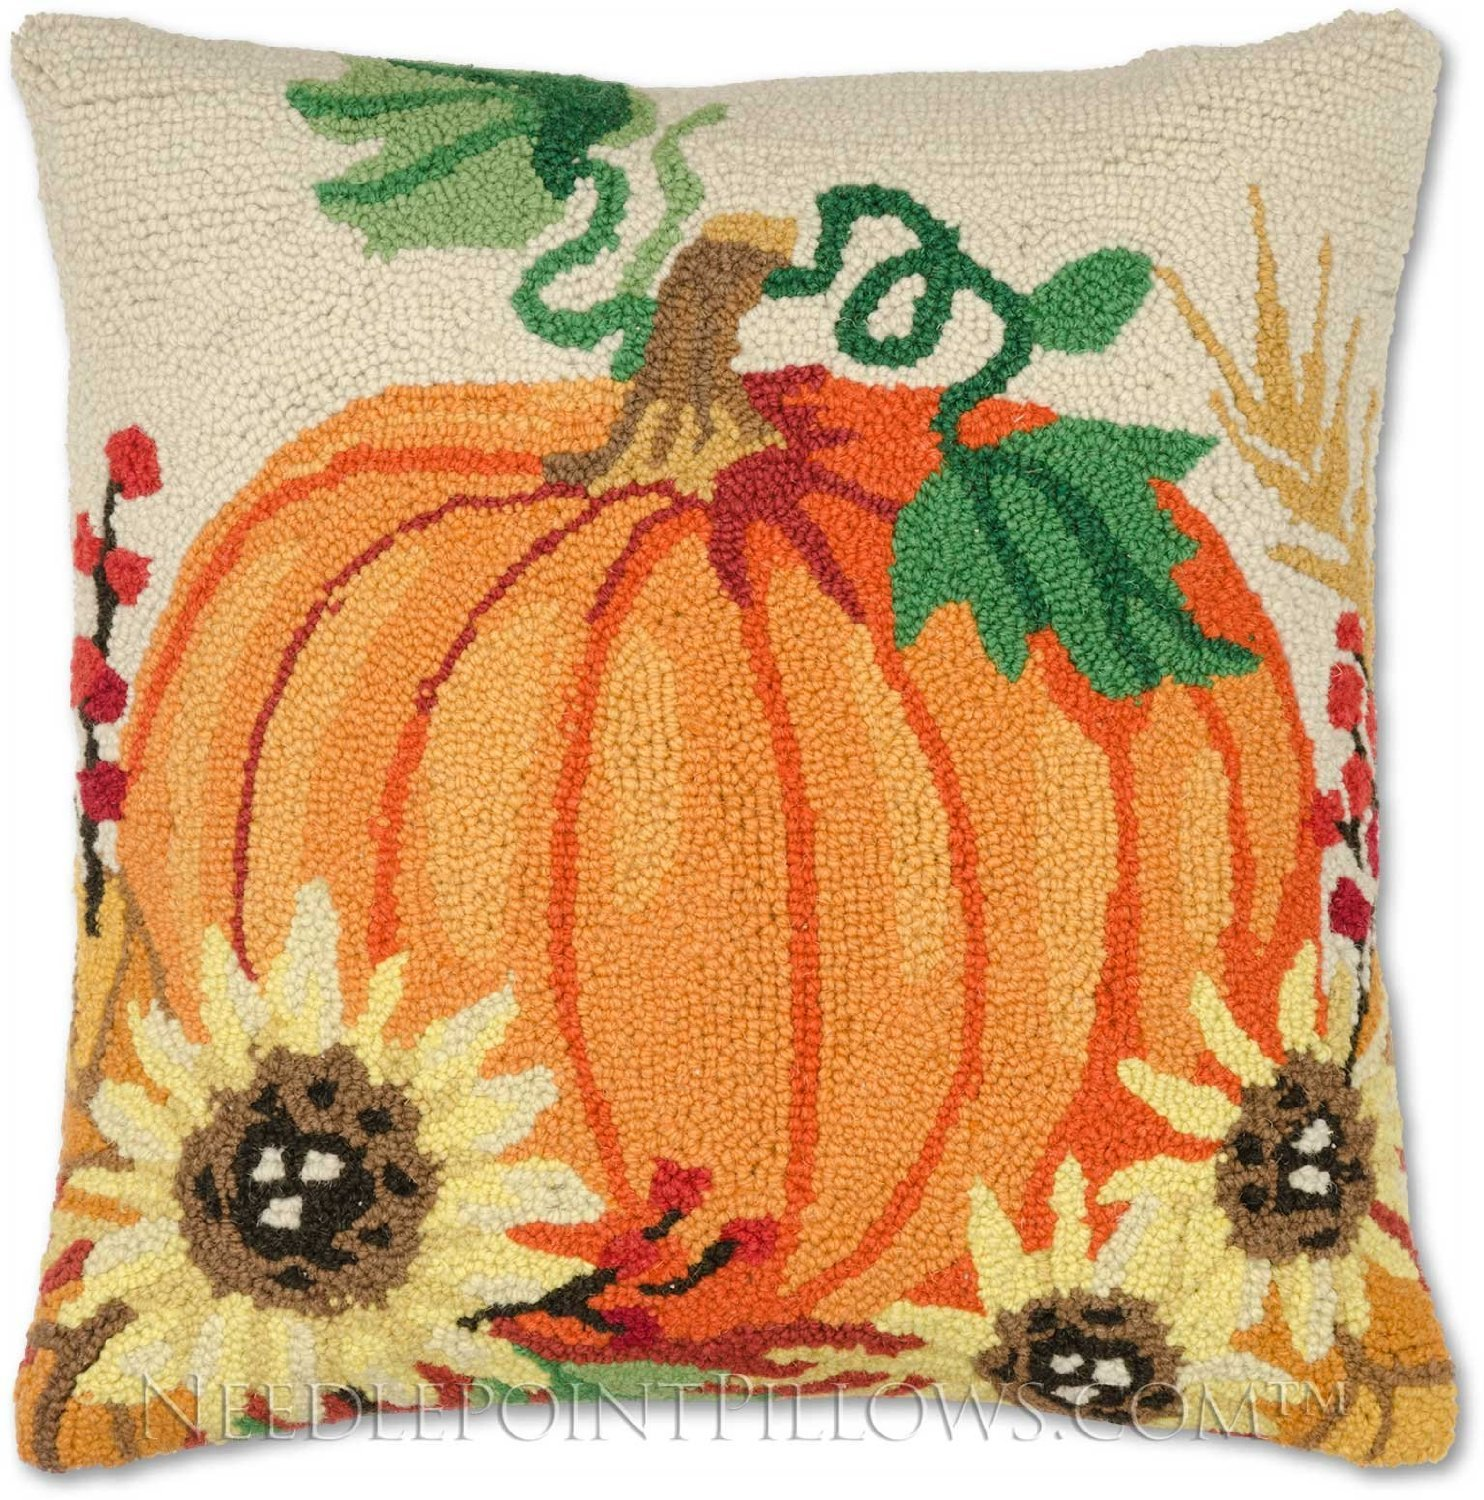 diy from house throw make shop them order pillows love pillow but yourself thanksgiving insane have time our to this don the t etsy